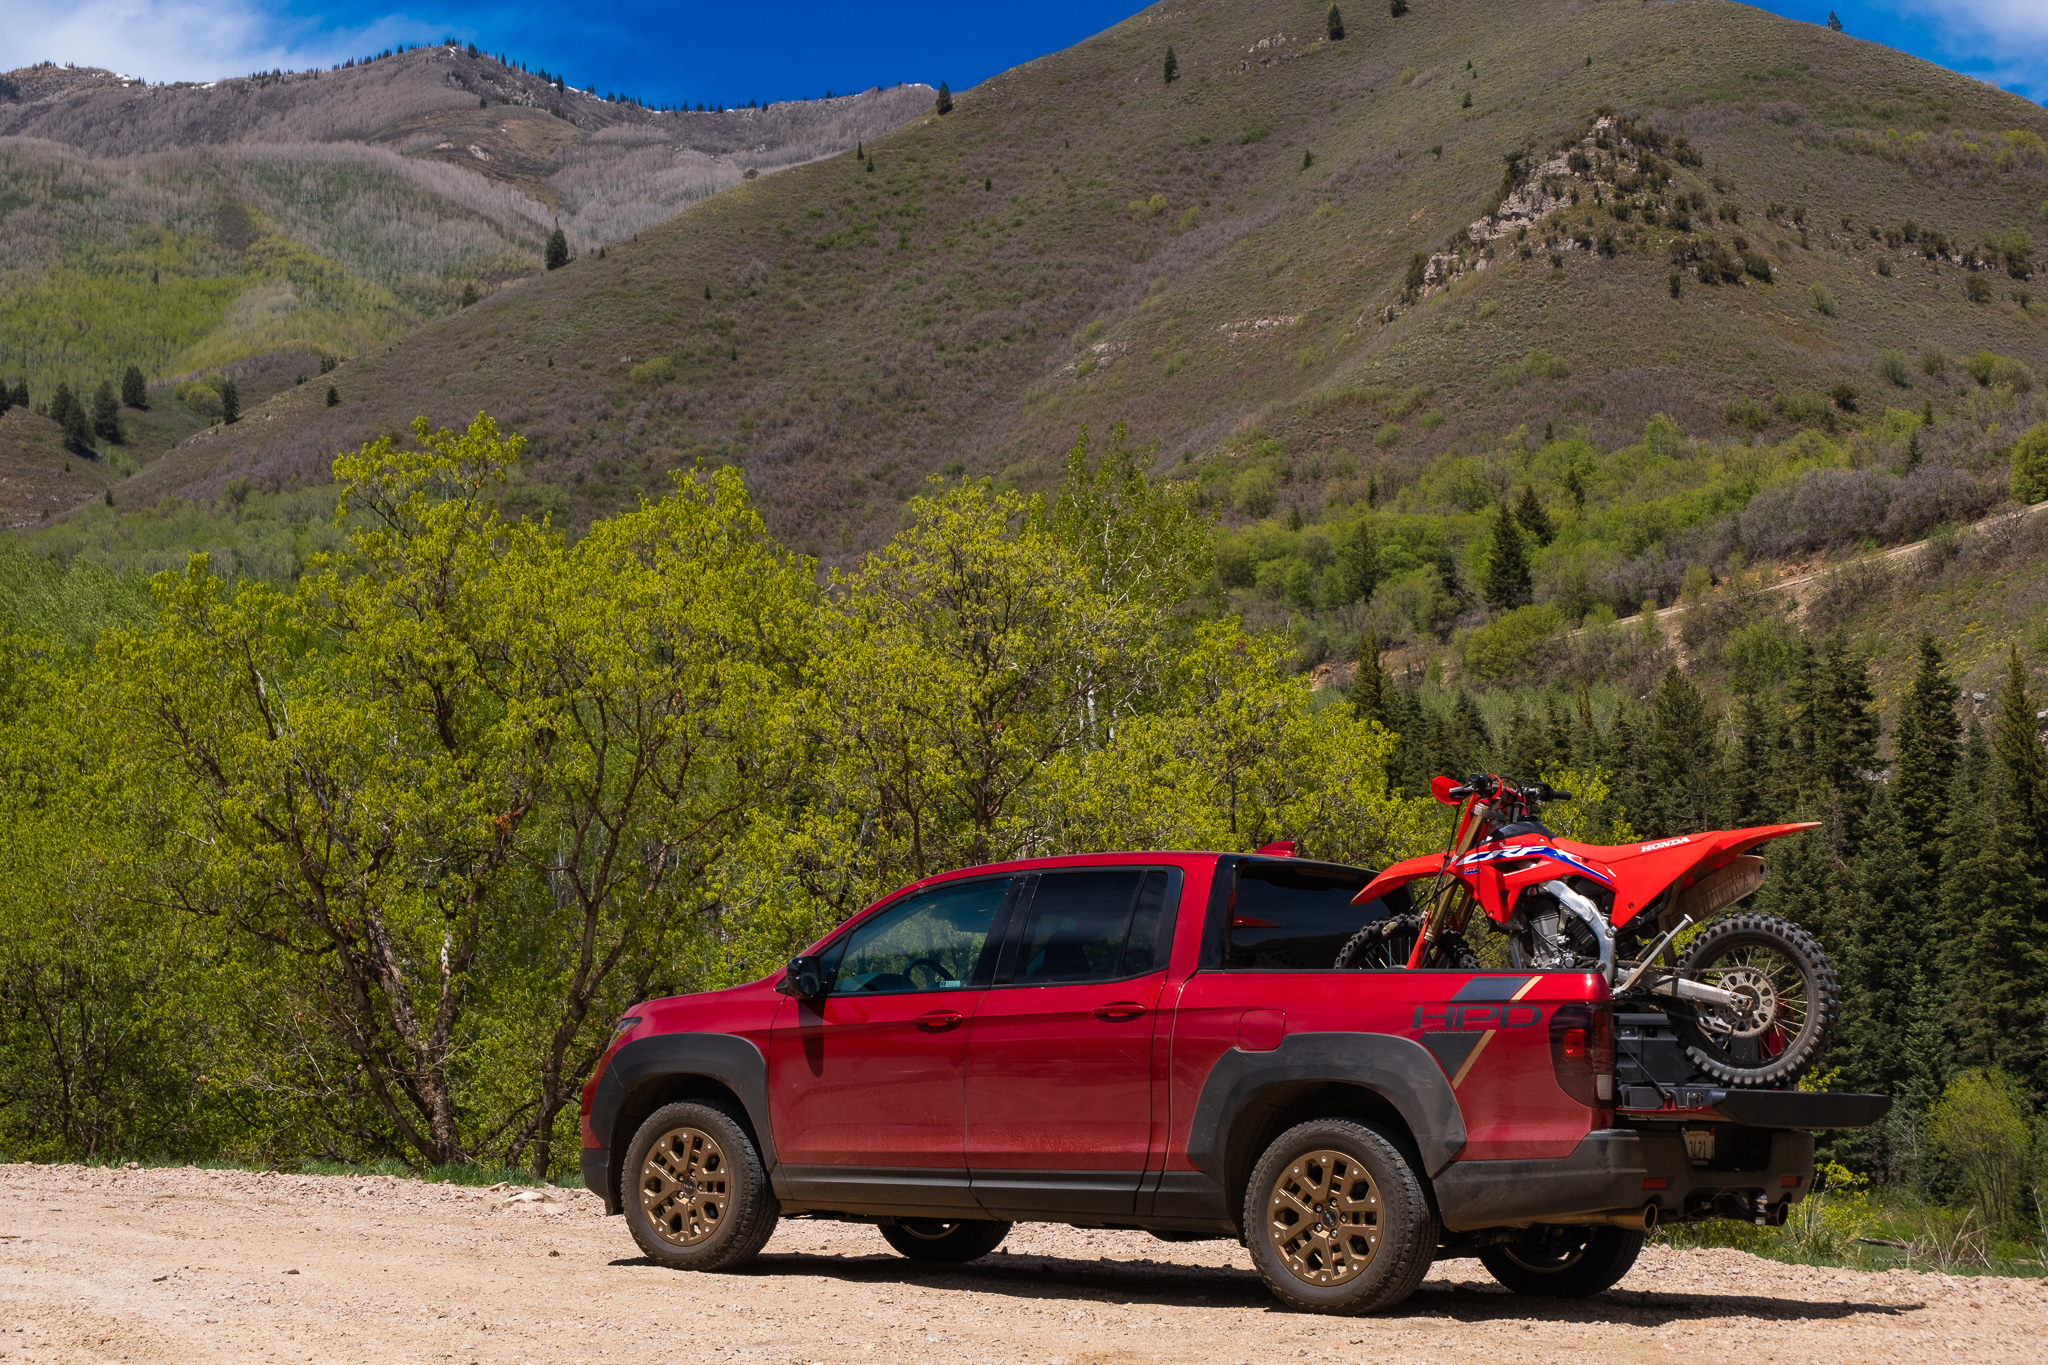 The Ridgeline at the base of the Wasatch Mountains in Utah.